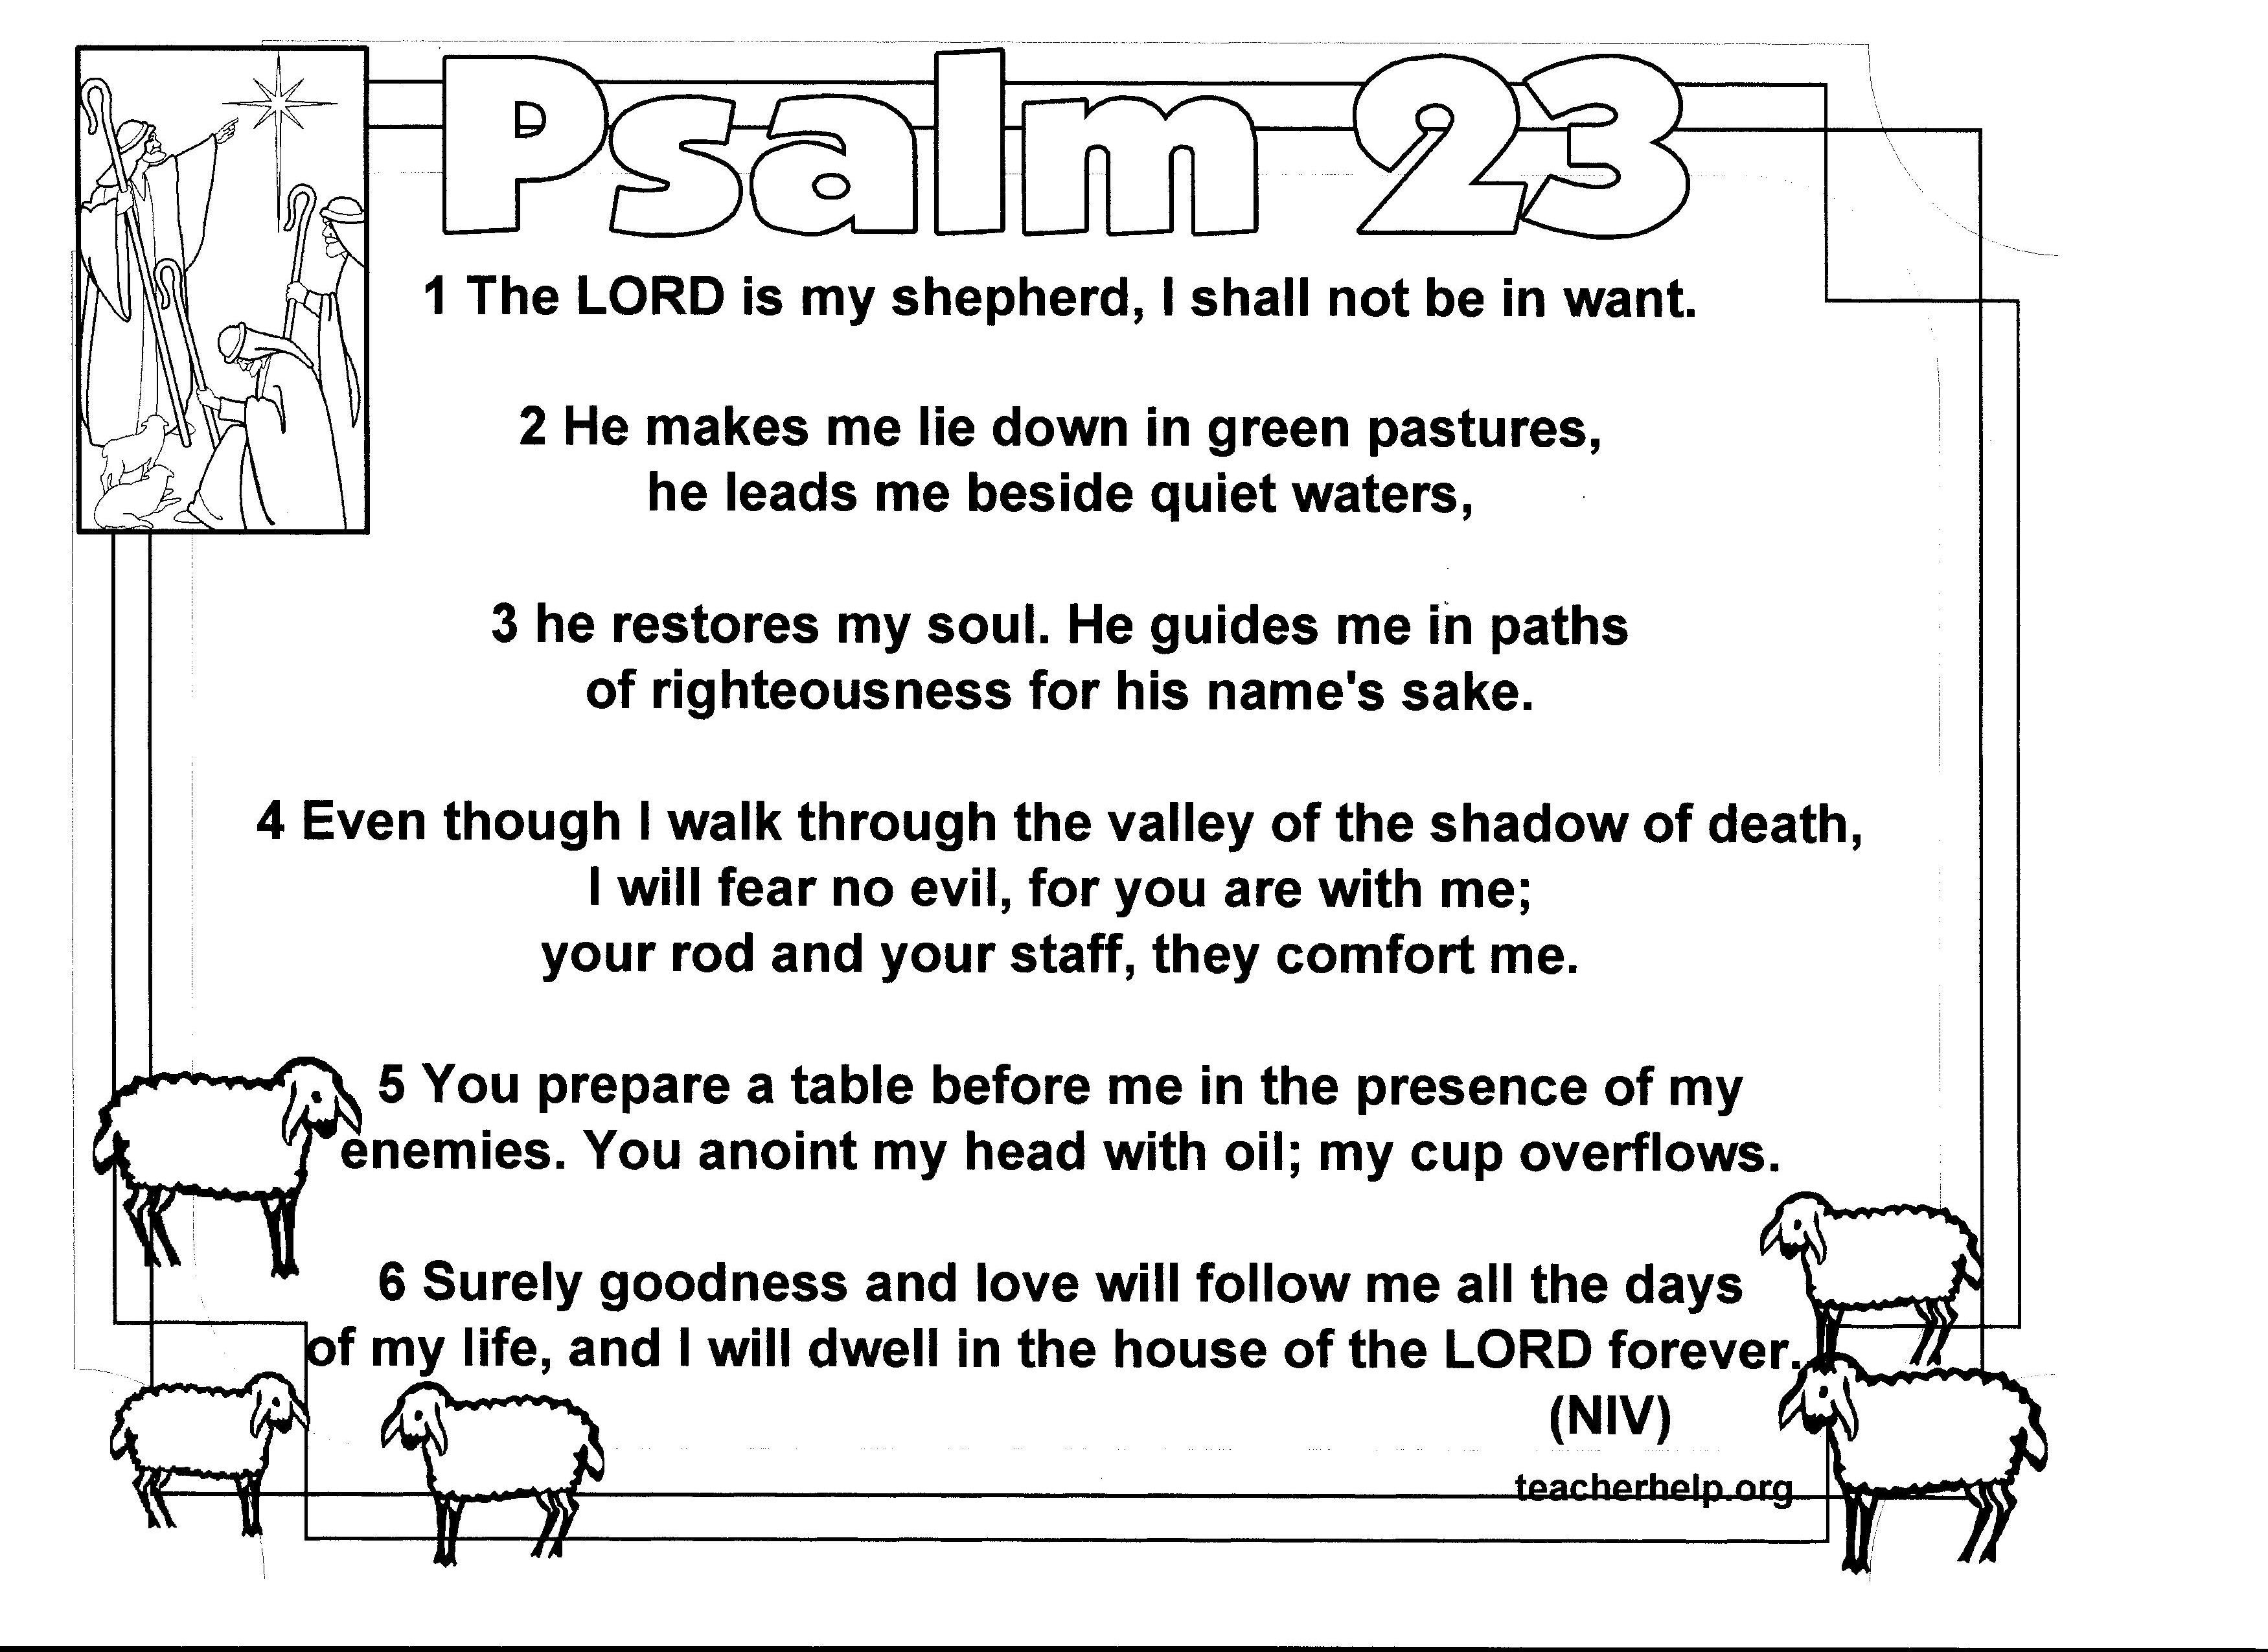 psalm 23 coloring sheet is available in niv kjvand nviespaol - Psalm 23 Coloring Page